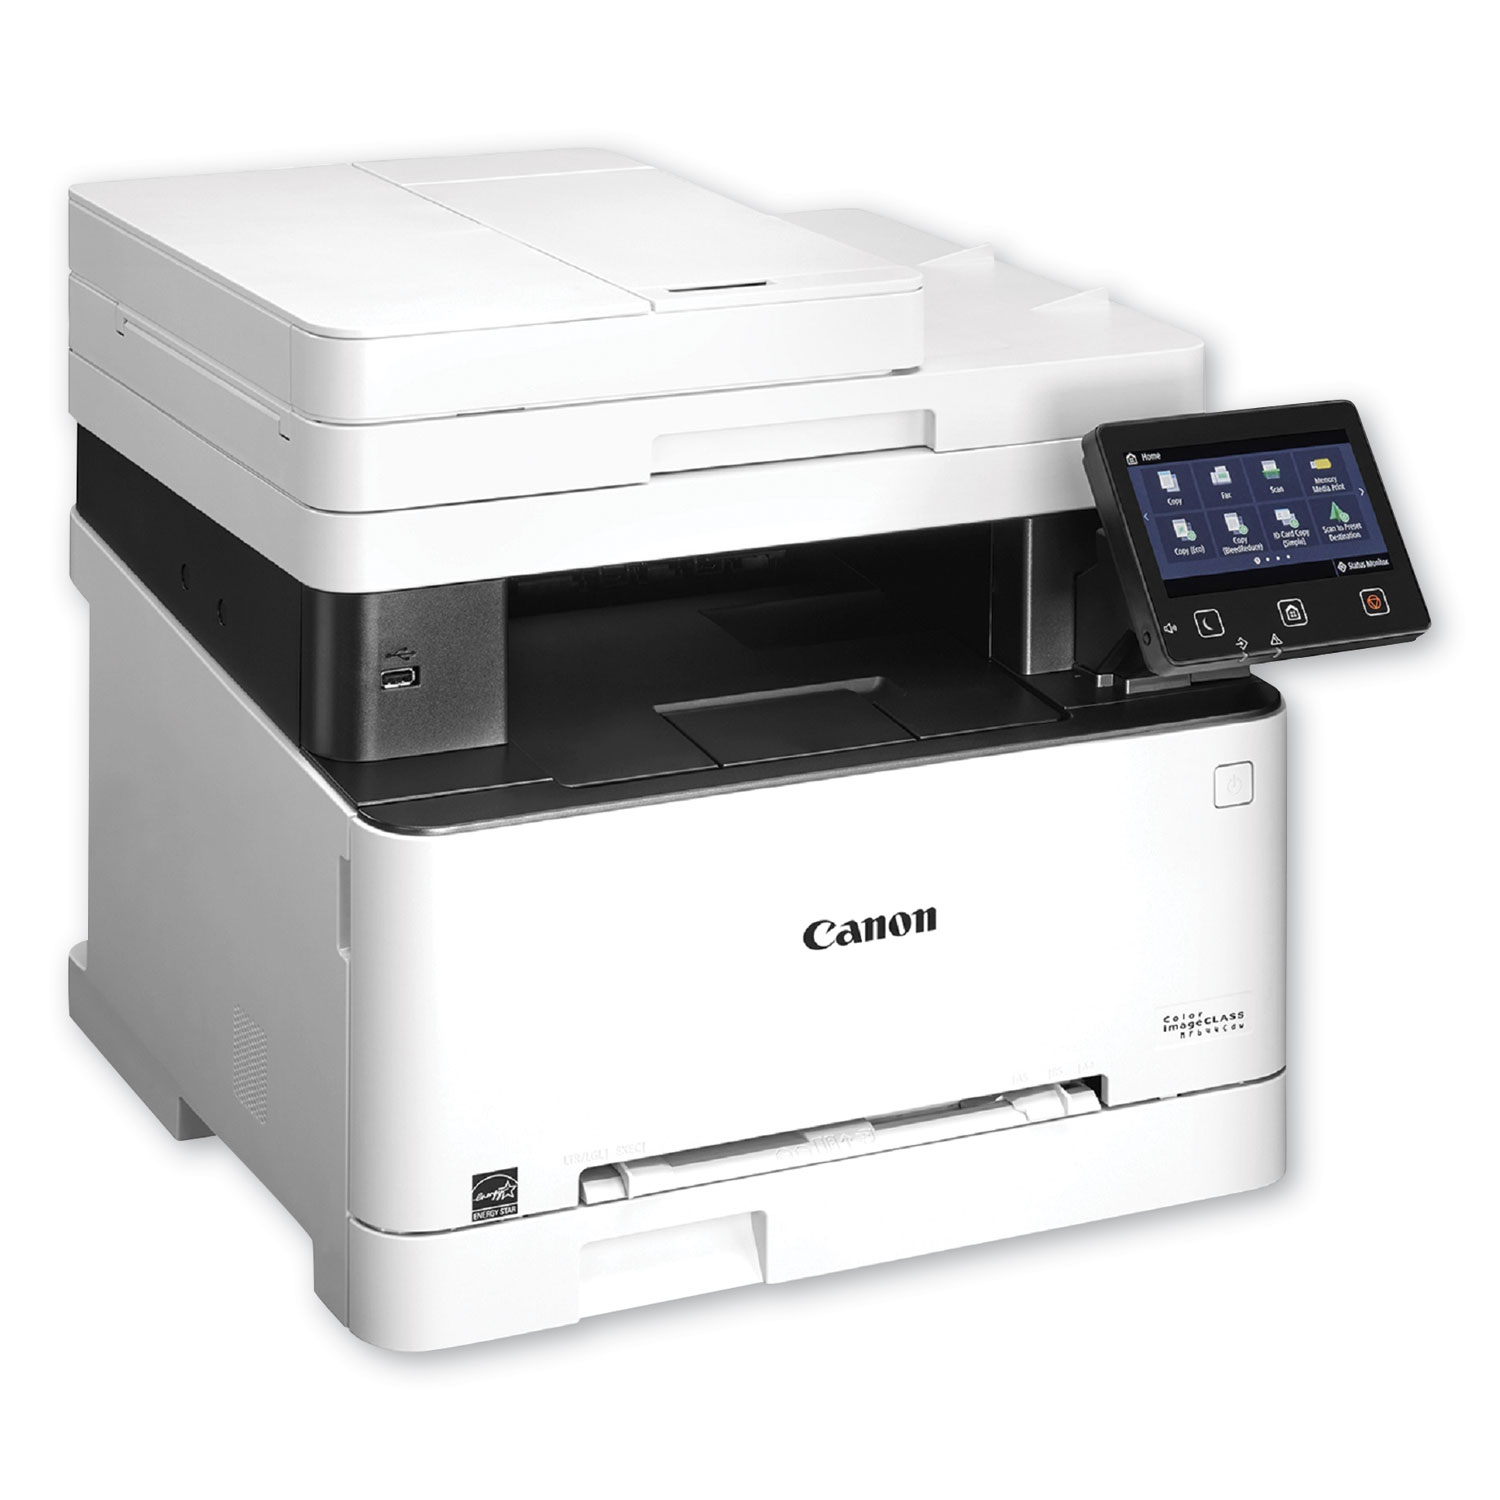 Color imageCLASS MF644Cdw Wireless Multifunction Laser Printer, Copy/Fax/Print/Scan